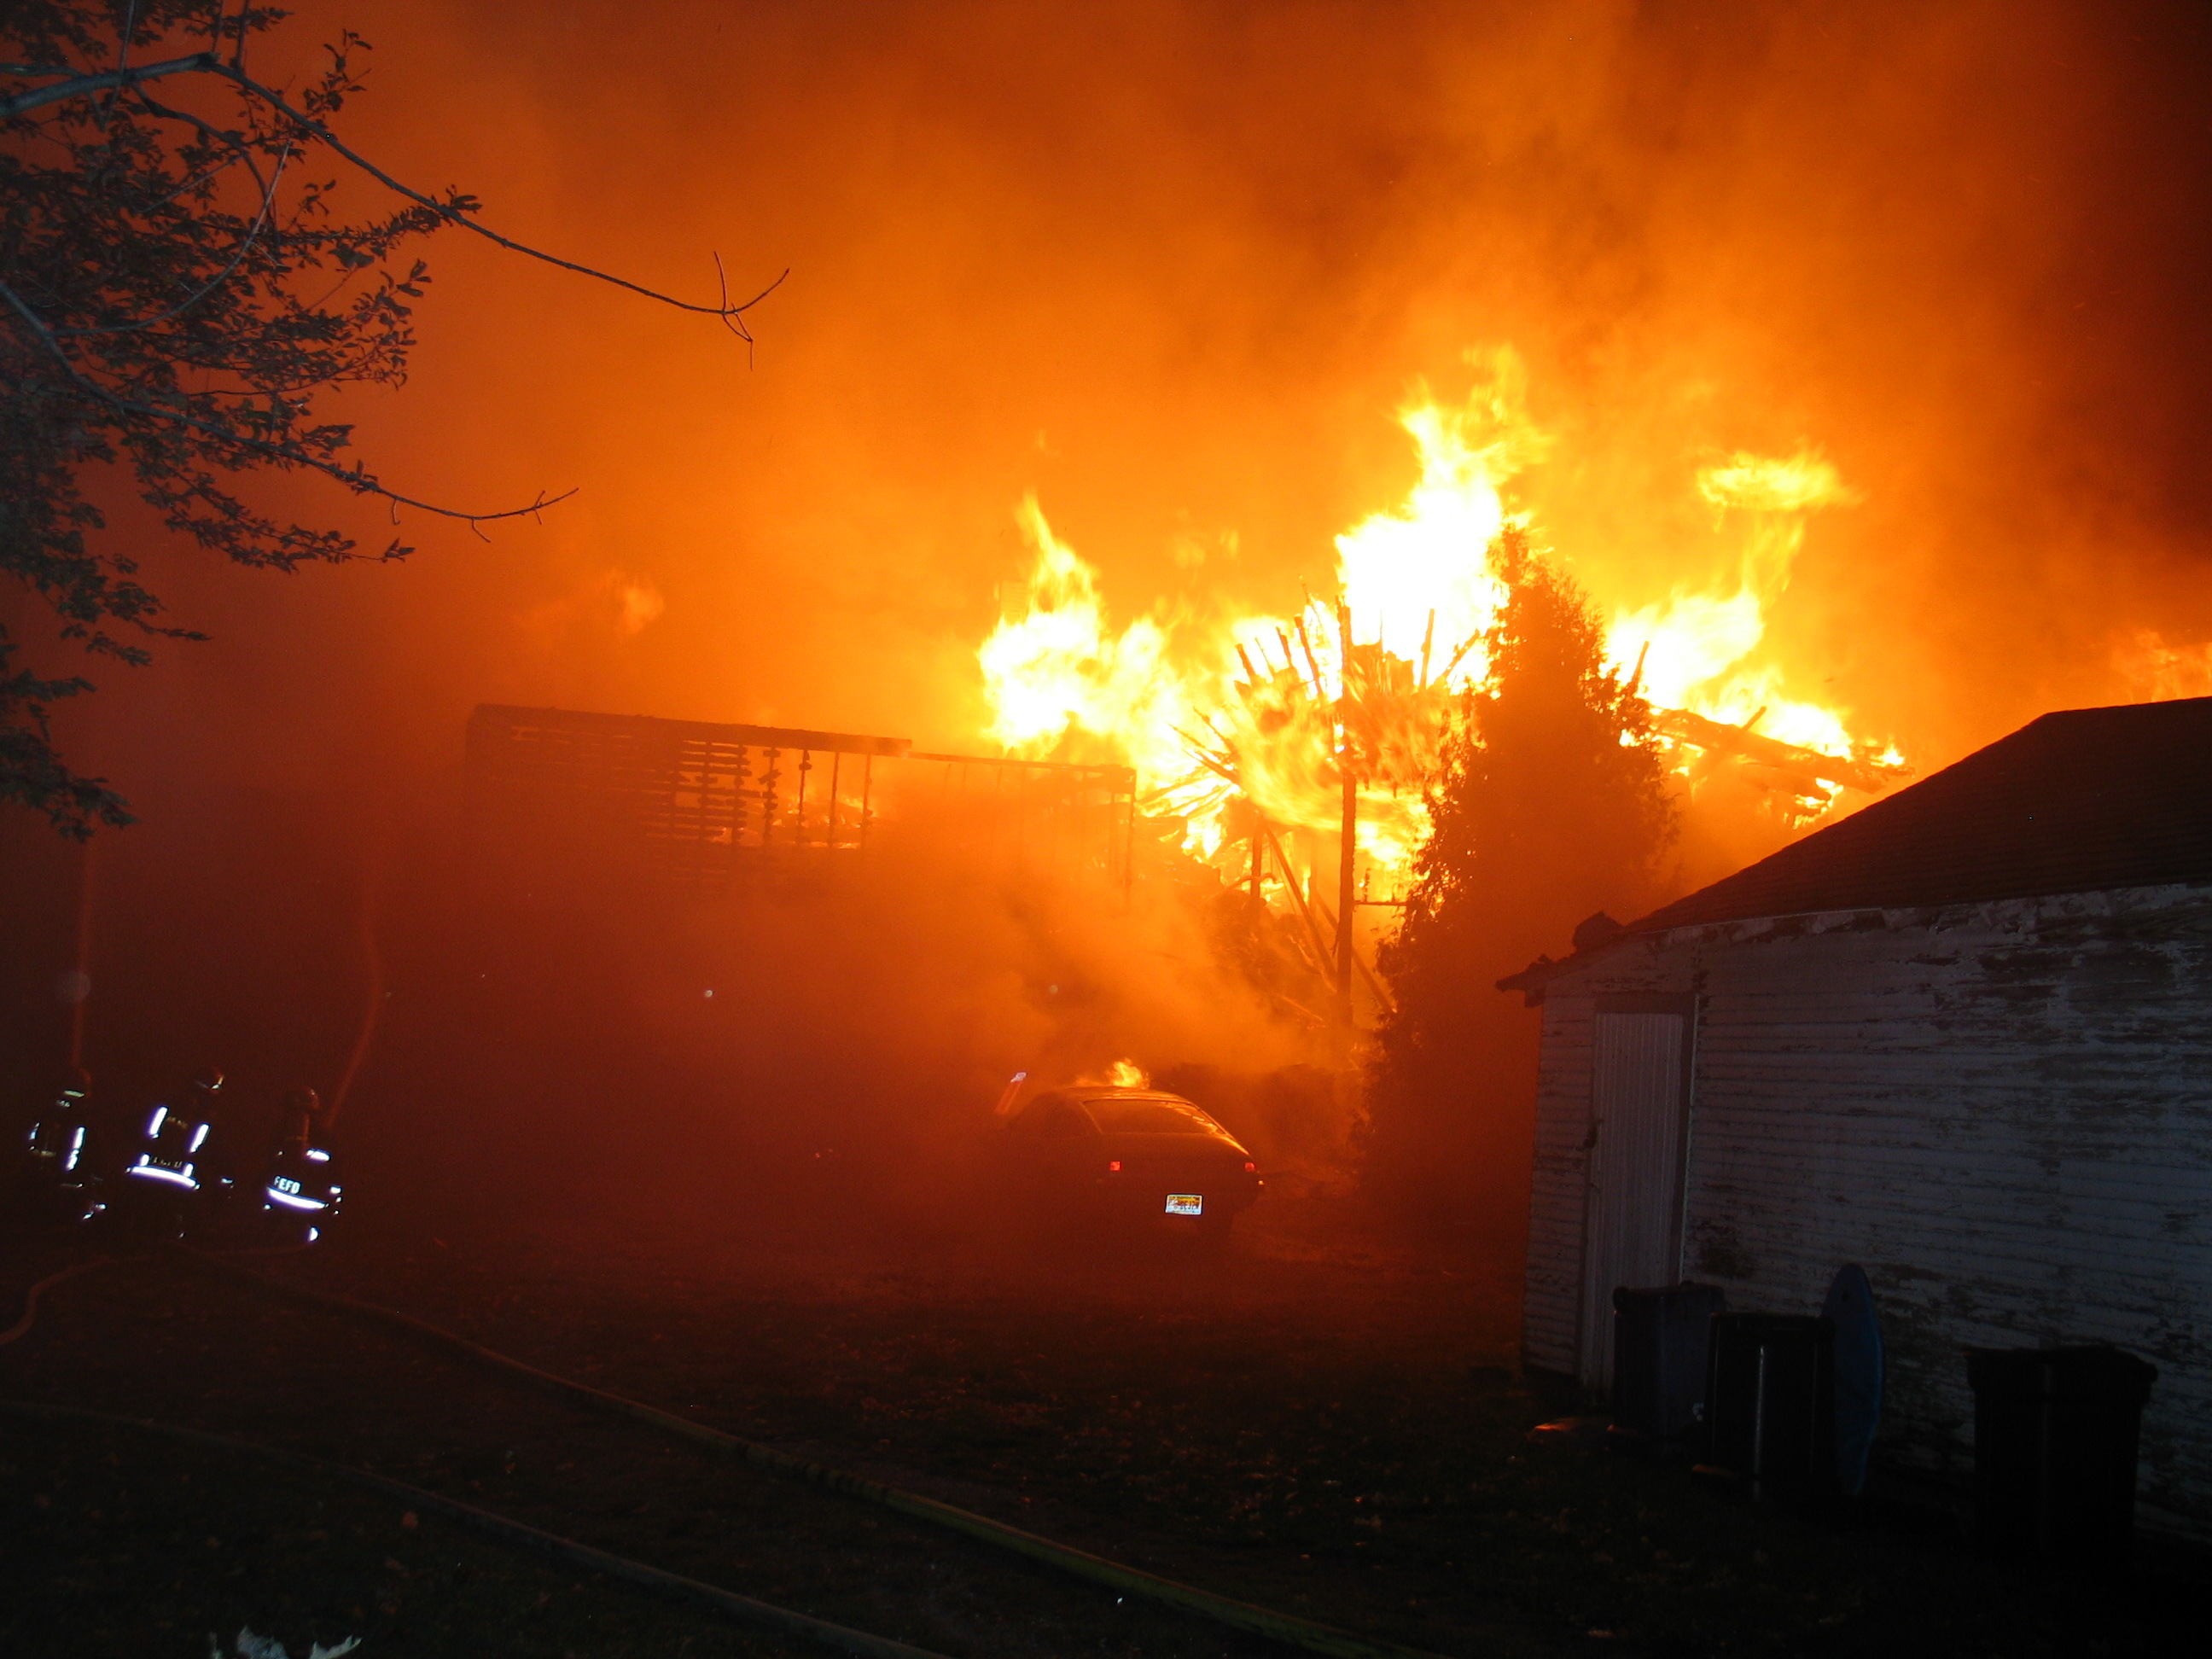 An early-morning fire caused more than $2 million in damage to some lakefront cottages. (Harry Rosettani/contributed photo)